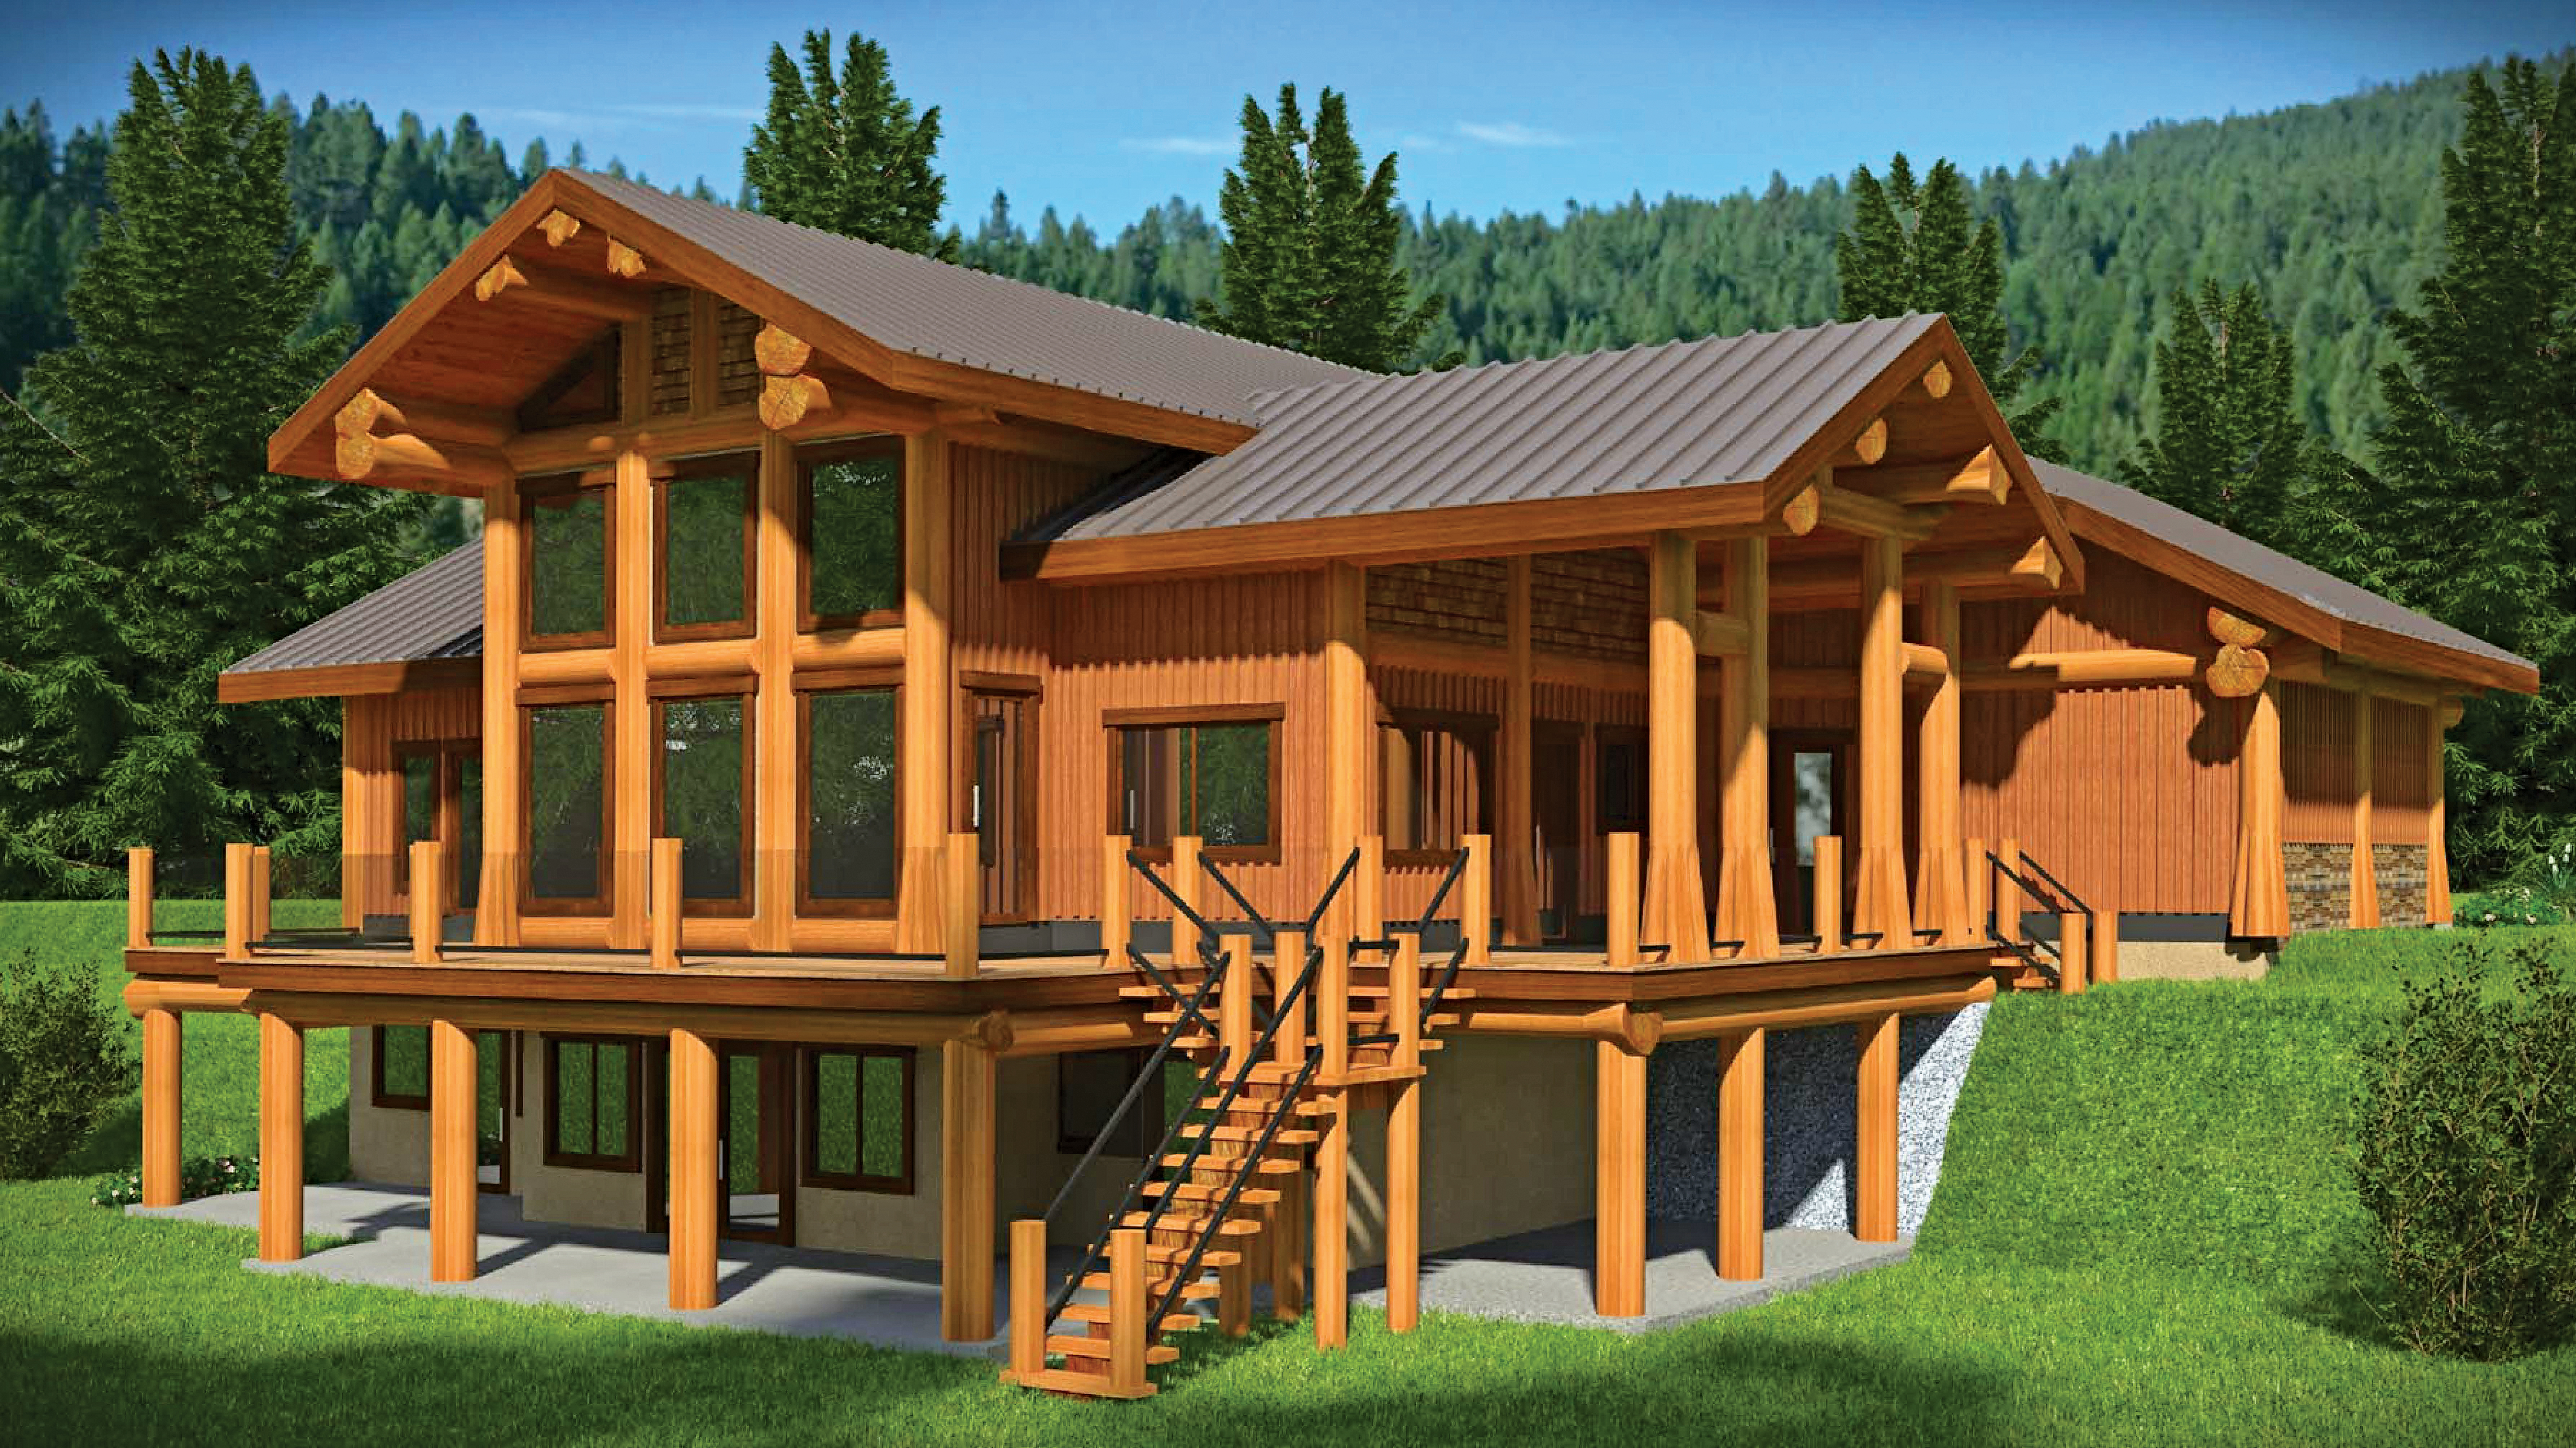 Floor Plan: The British Columbia Log Home with Tons of Outdoor Space